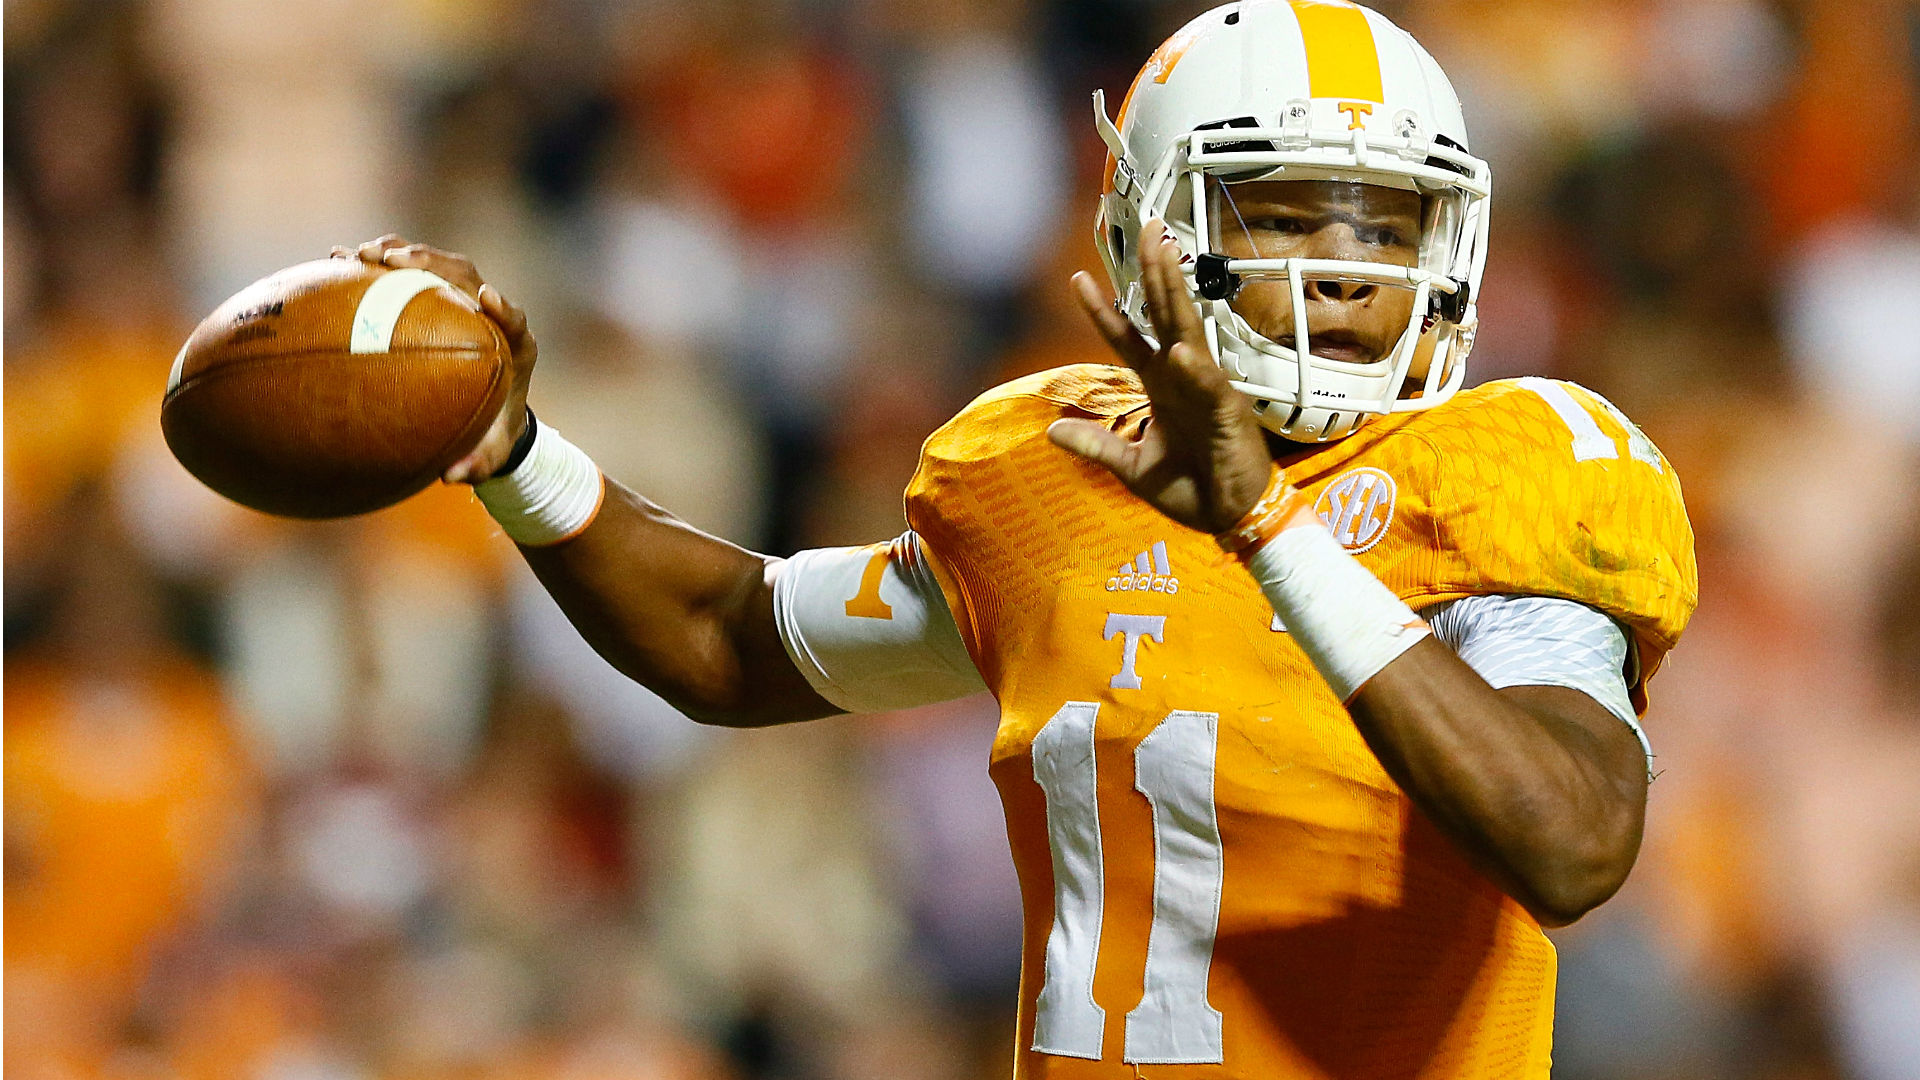 Iowa vs. Tennessee betting lines and pick – Quarterbacks in focus for TaxSlayer Bowl